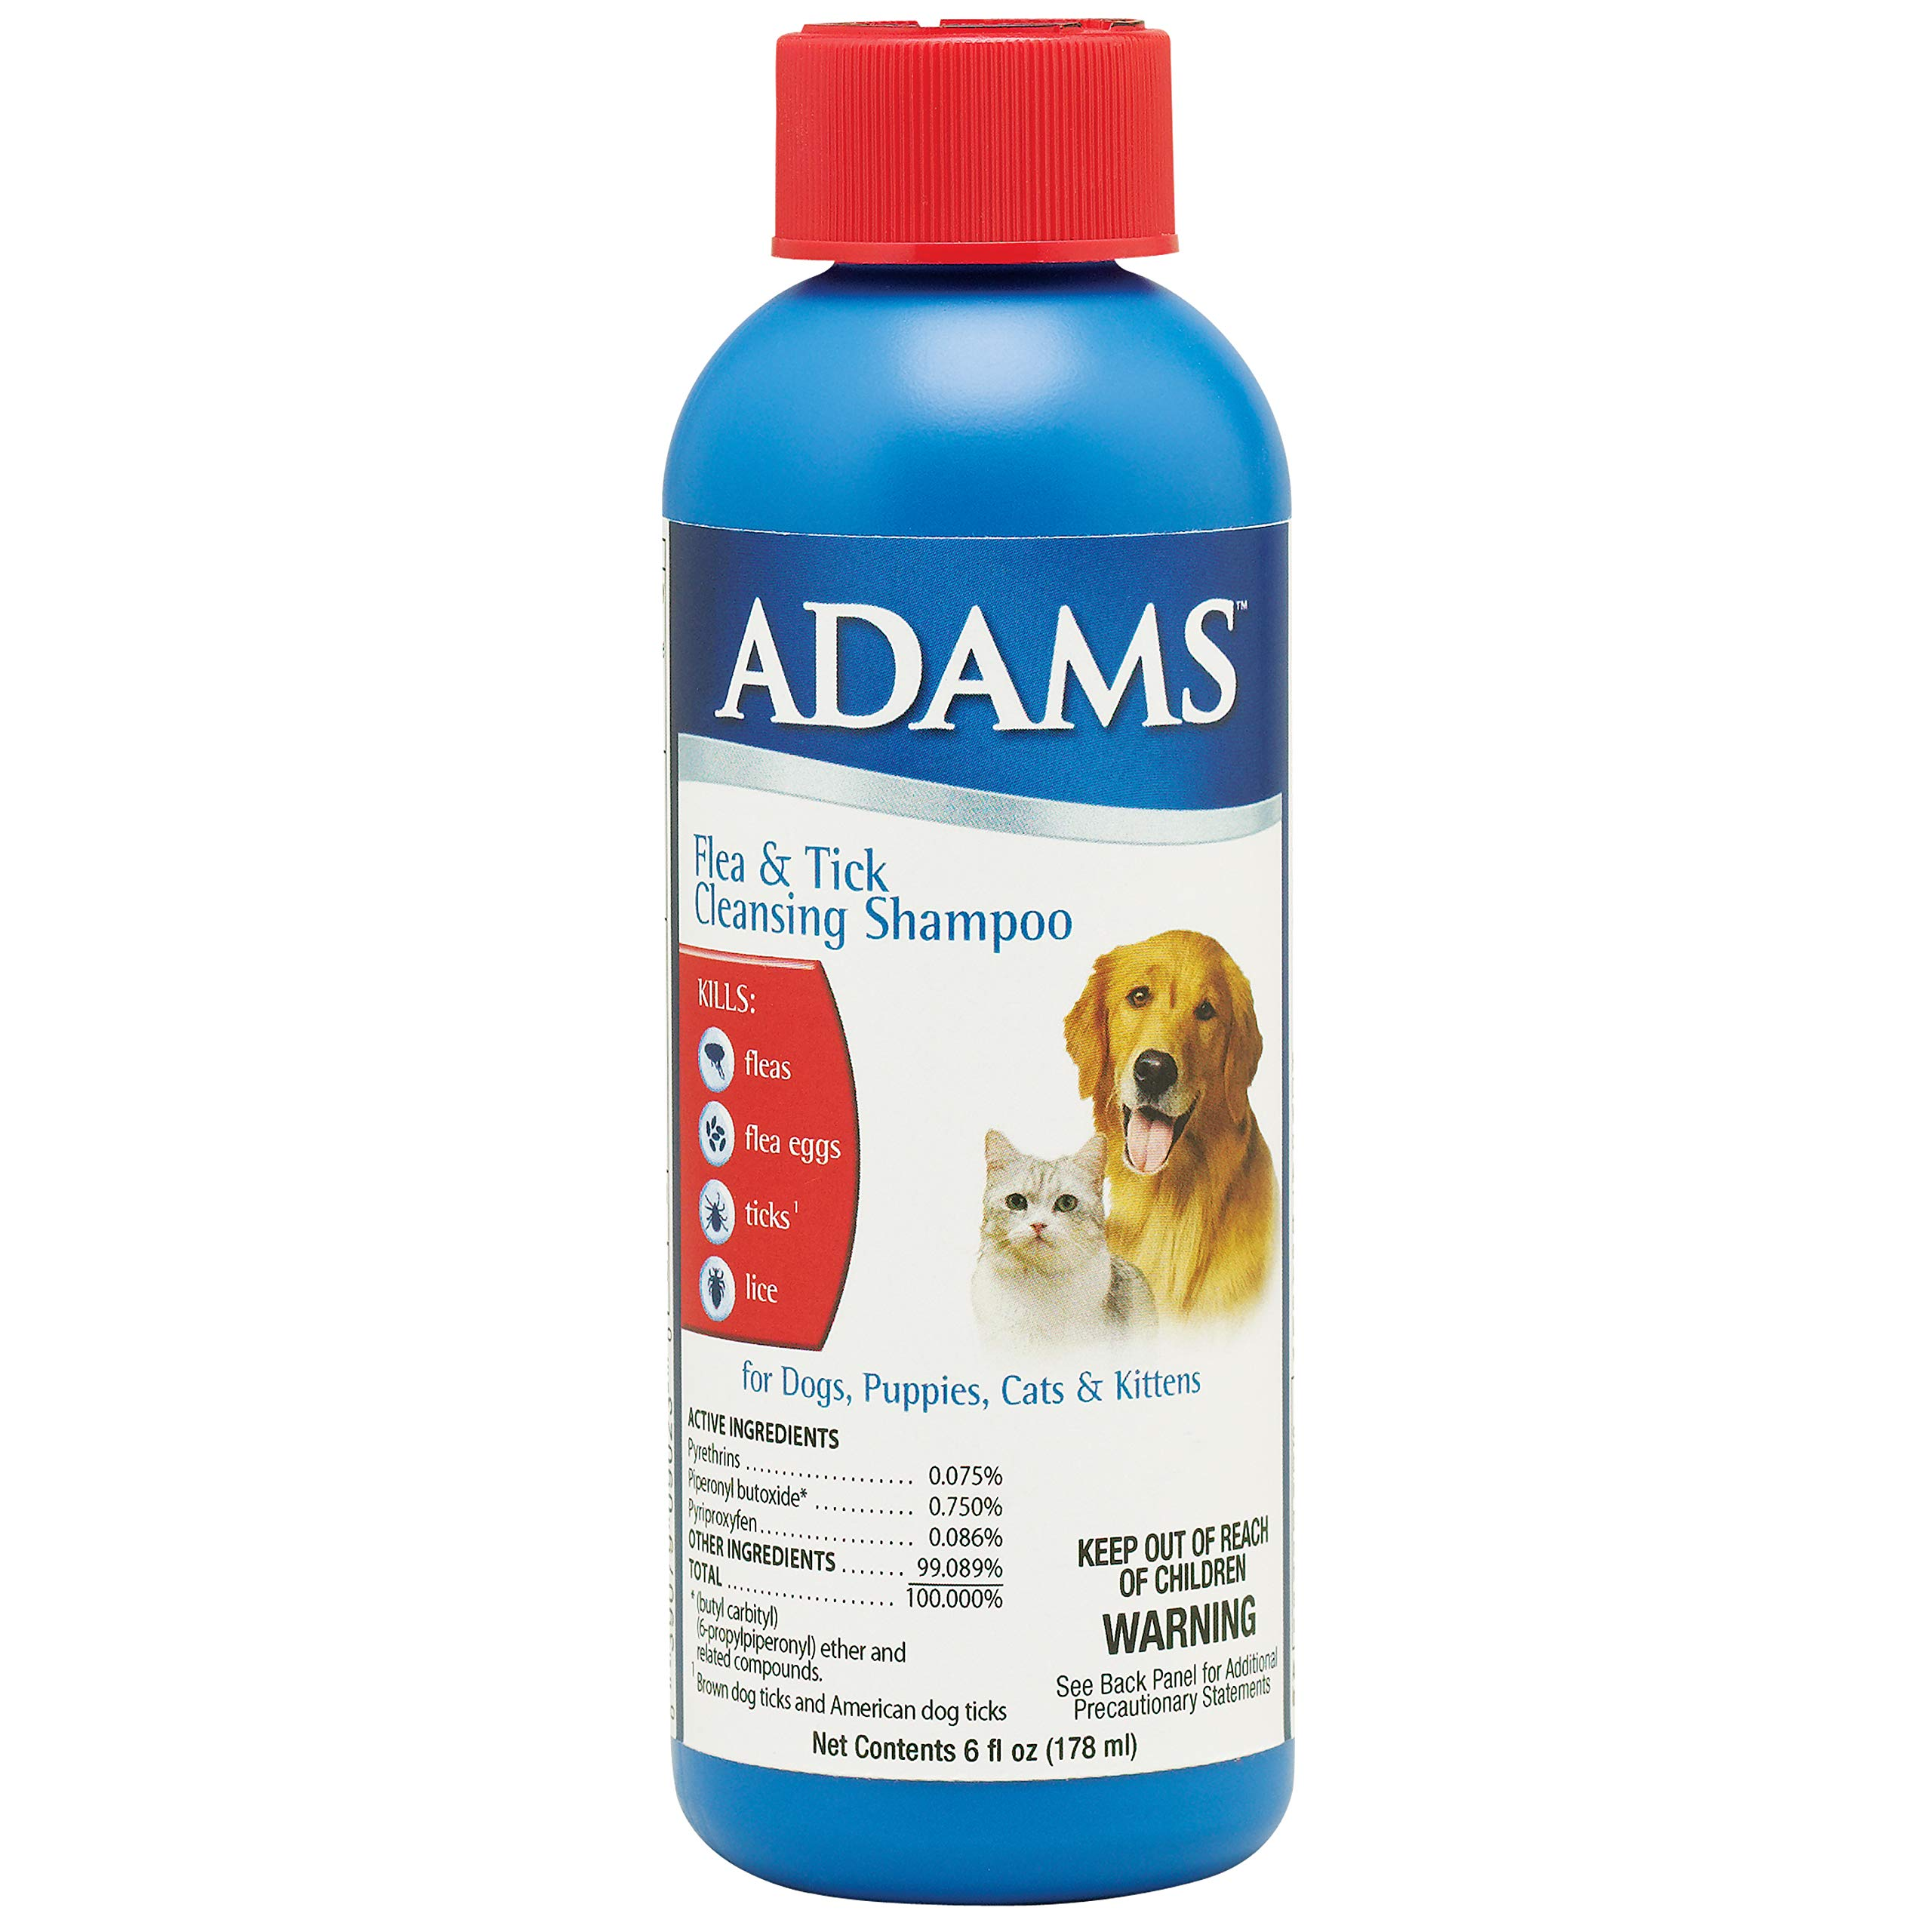 Adams Flea and Tick Control Cleansing Shampoo for Cats and Dogs by Adams